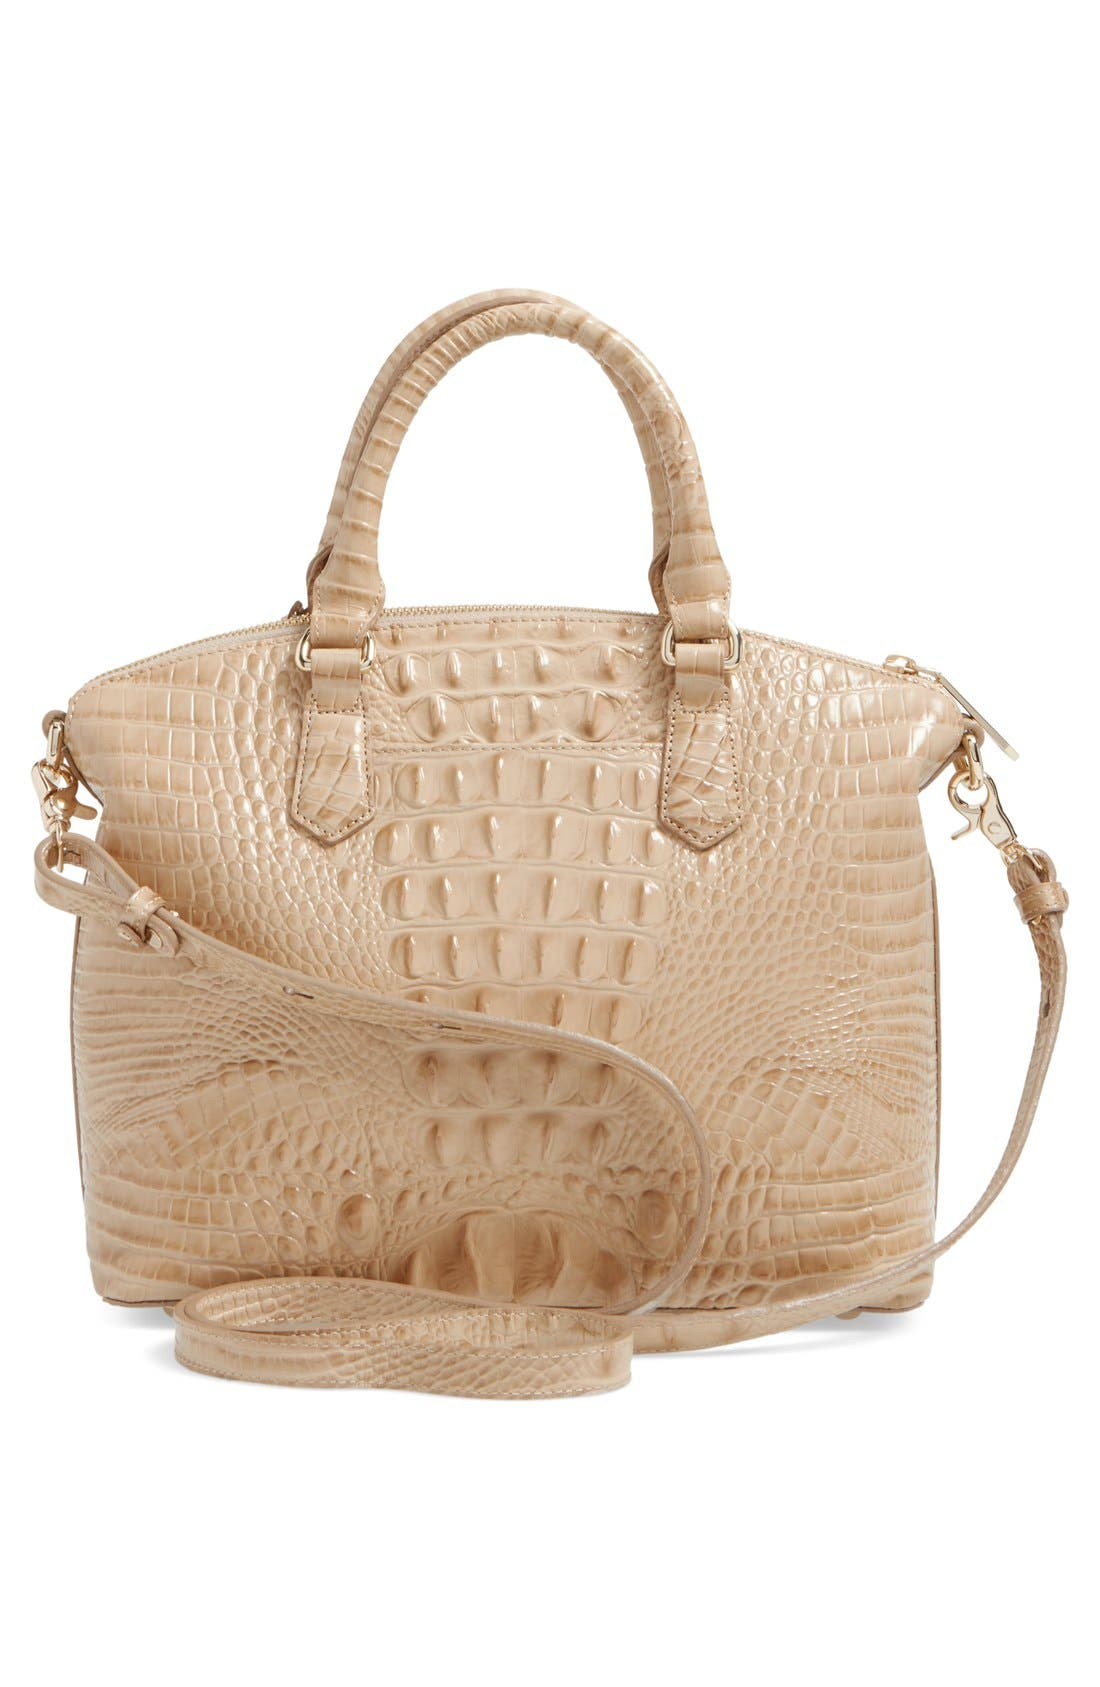 'Medium Duxbury' Croc Embossed Leather Satchel,                             Alternate thumbnail 99, color,